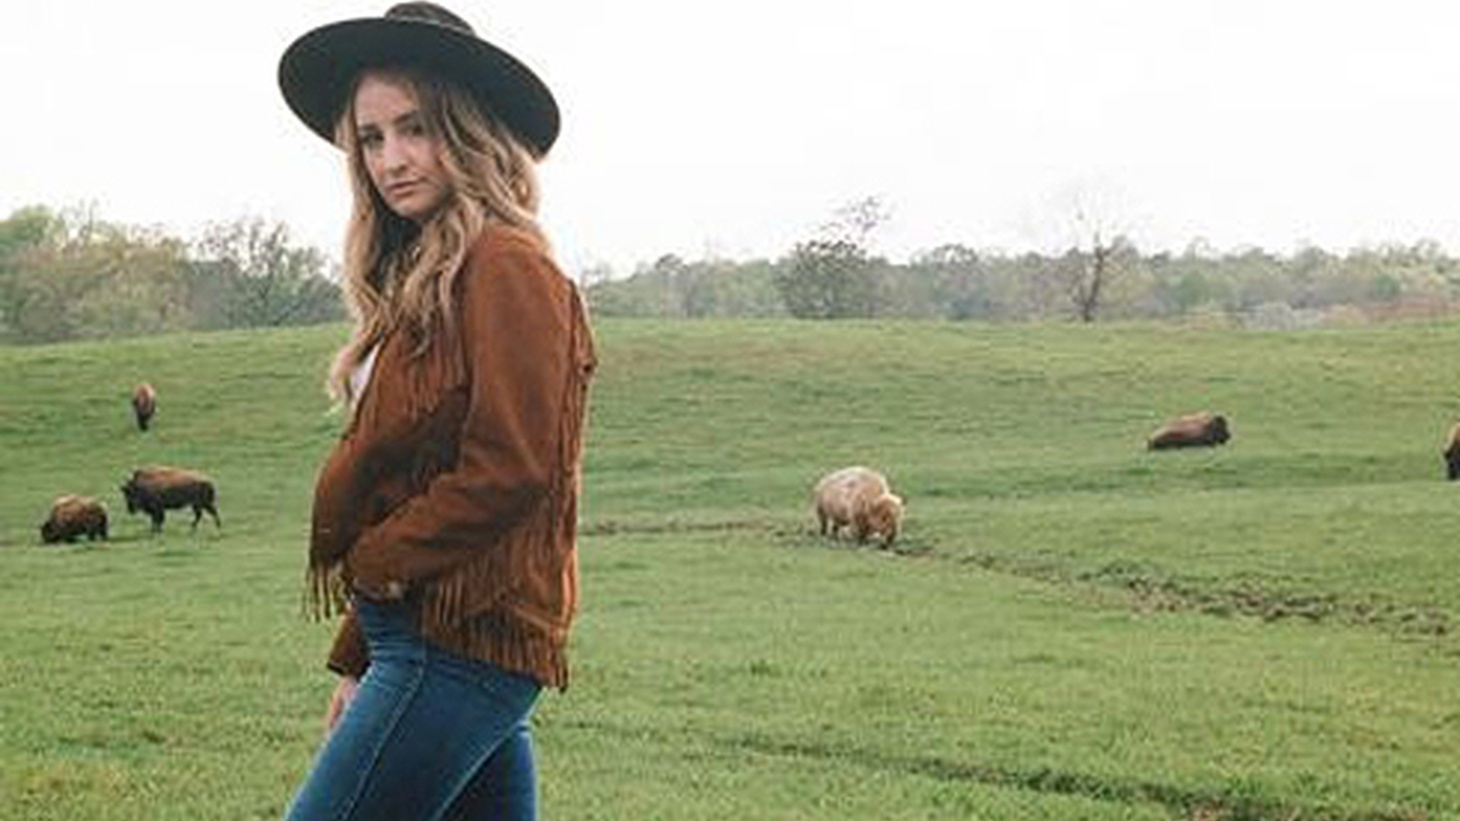 Last November, Margo Price took her hard working band back into a Memphis studio to start work on a new album. The sessions rendered over 30 new songs to choose from.